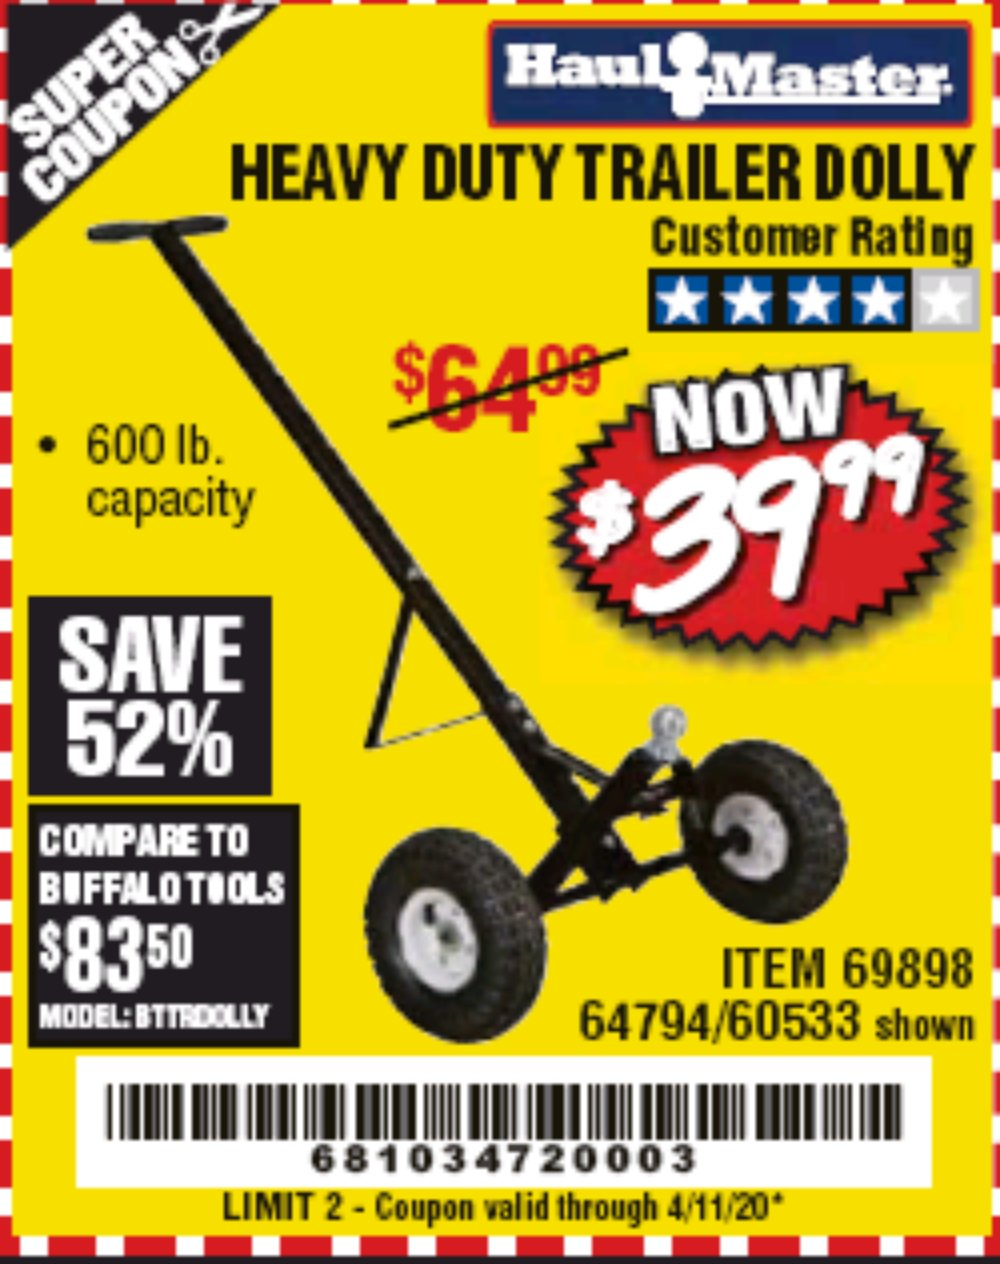 Harbor Freight Coupon, HF Coupons - Heavy Duty Trailer Dolly